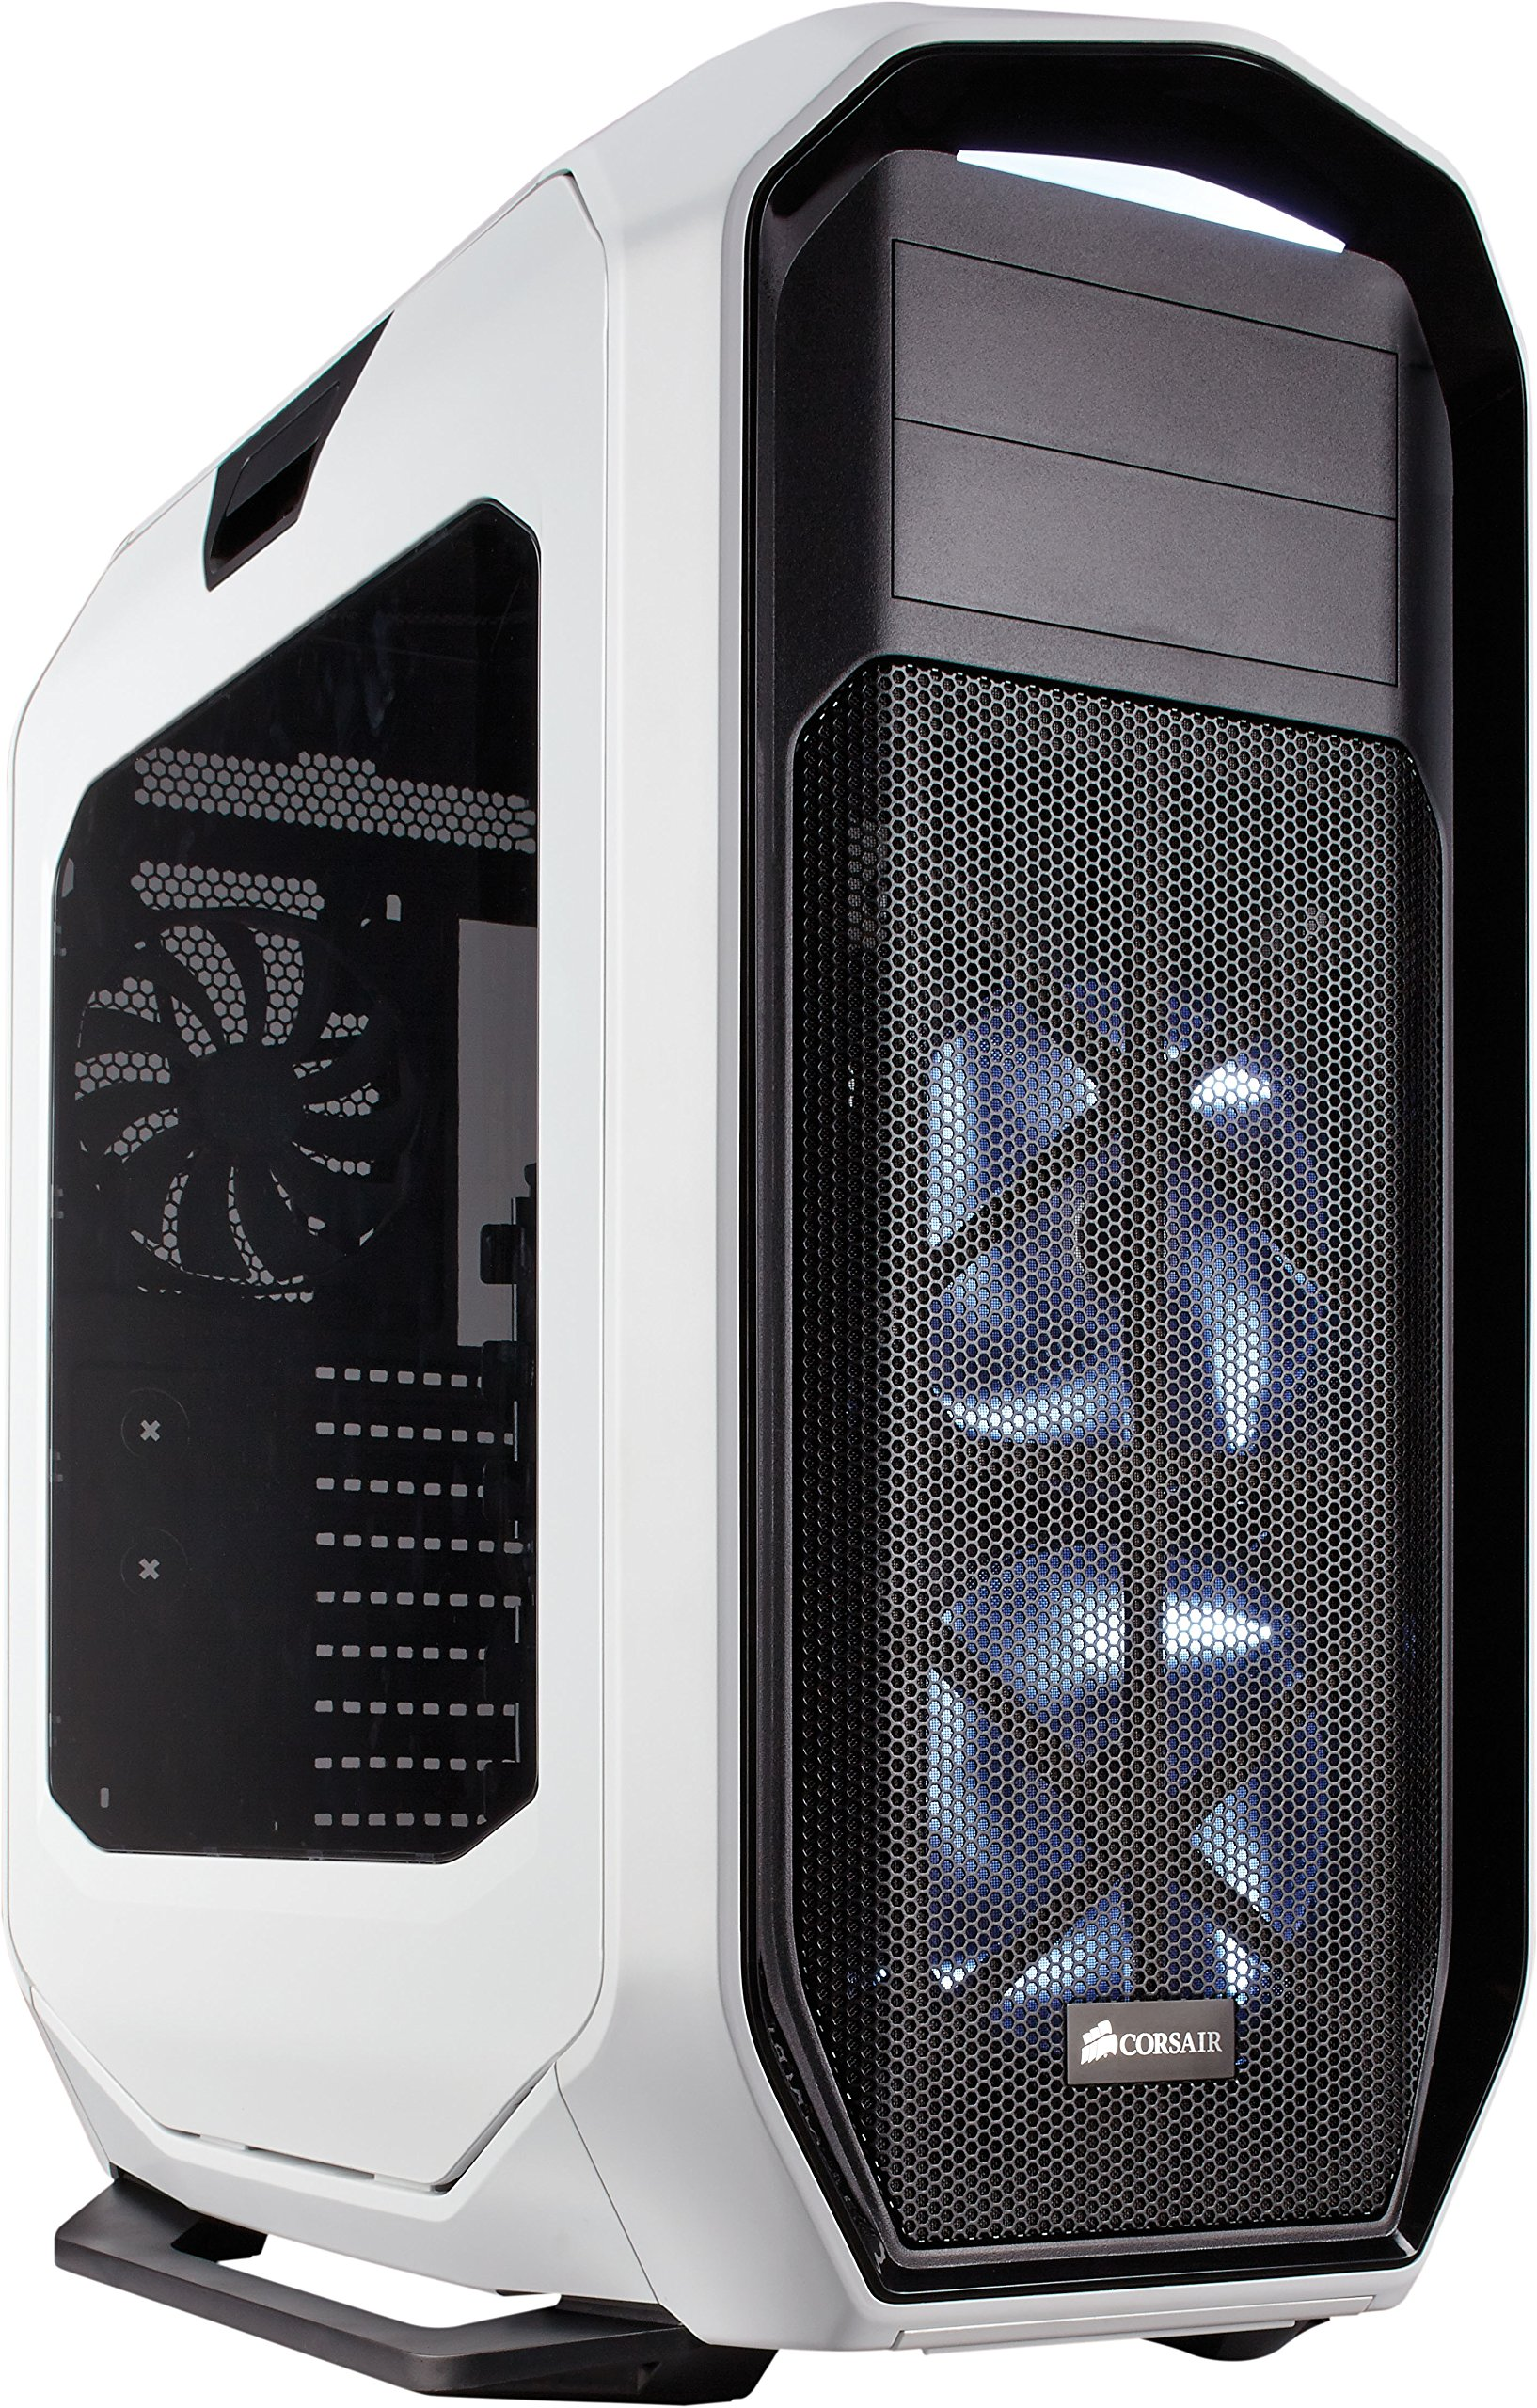 Corsair Graphite Series 780T Full Tower PC Case - White by Corsair